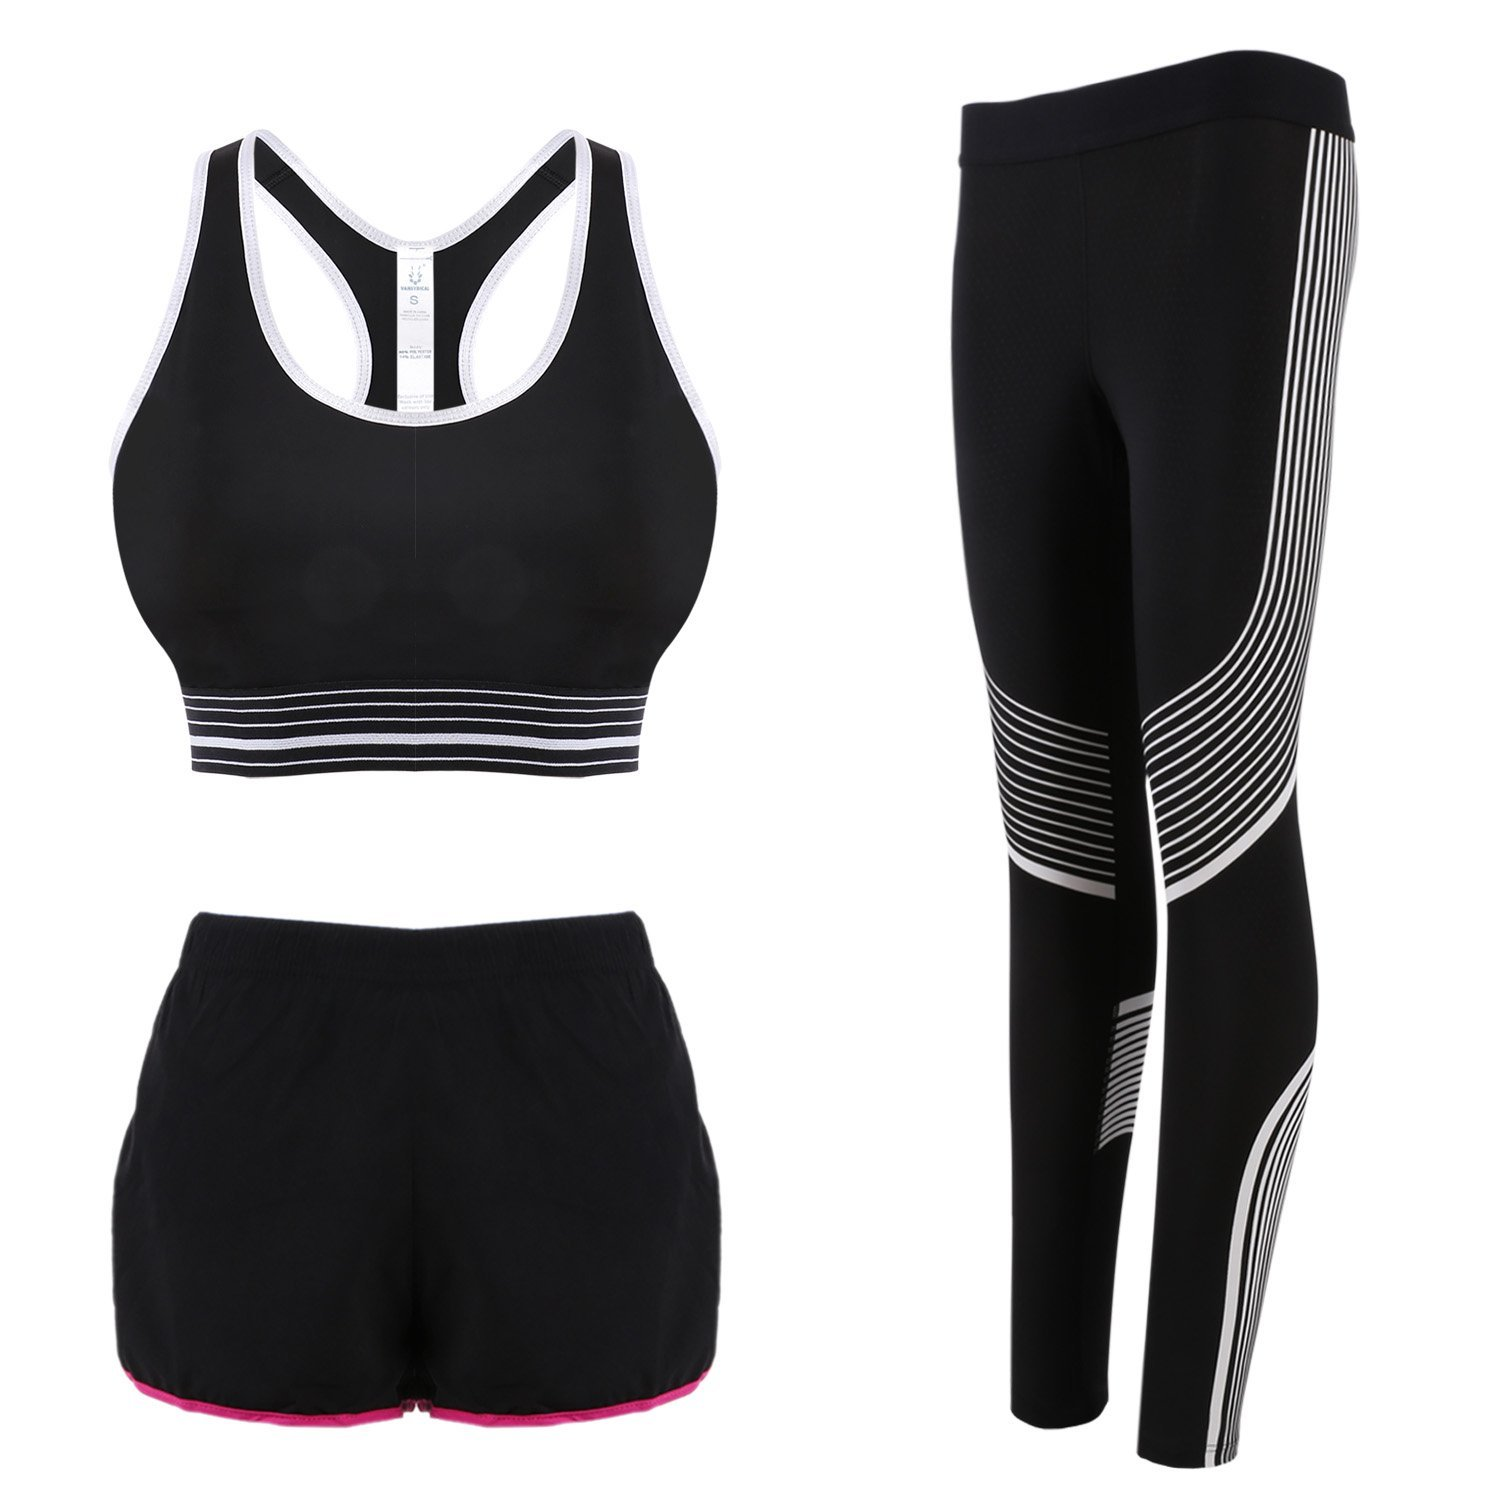 e5ef118509 Get Quotations · DAS Leben Active Pants Matching Set  Sports Bra